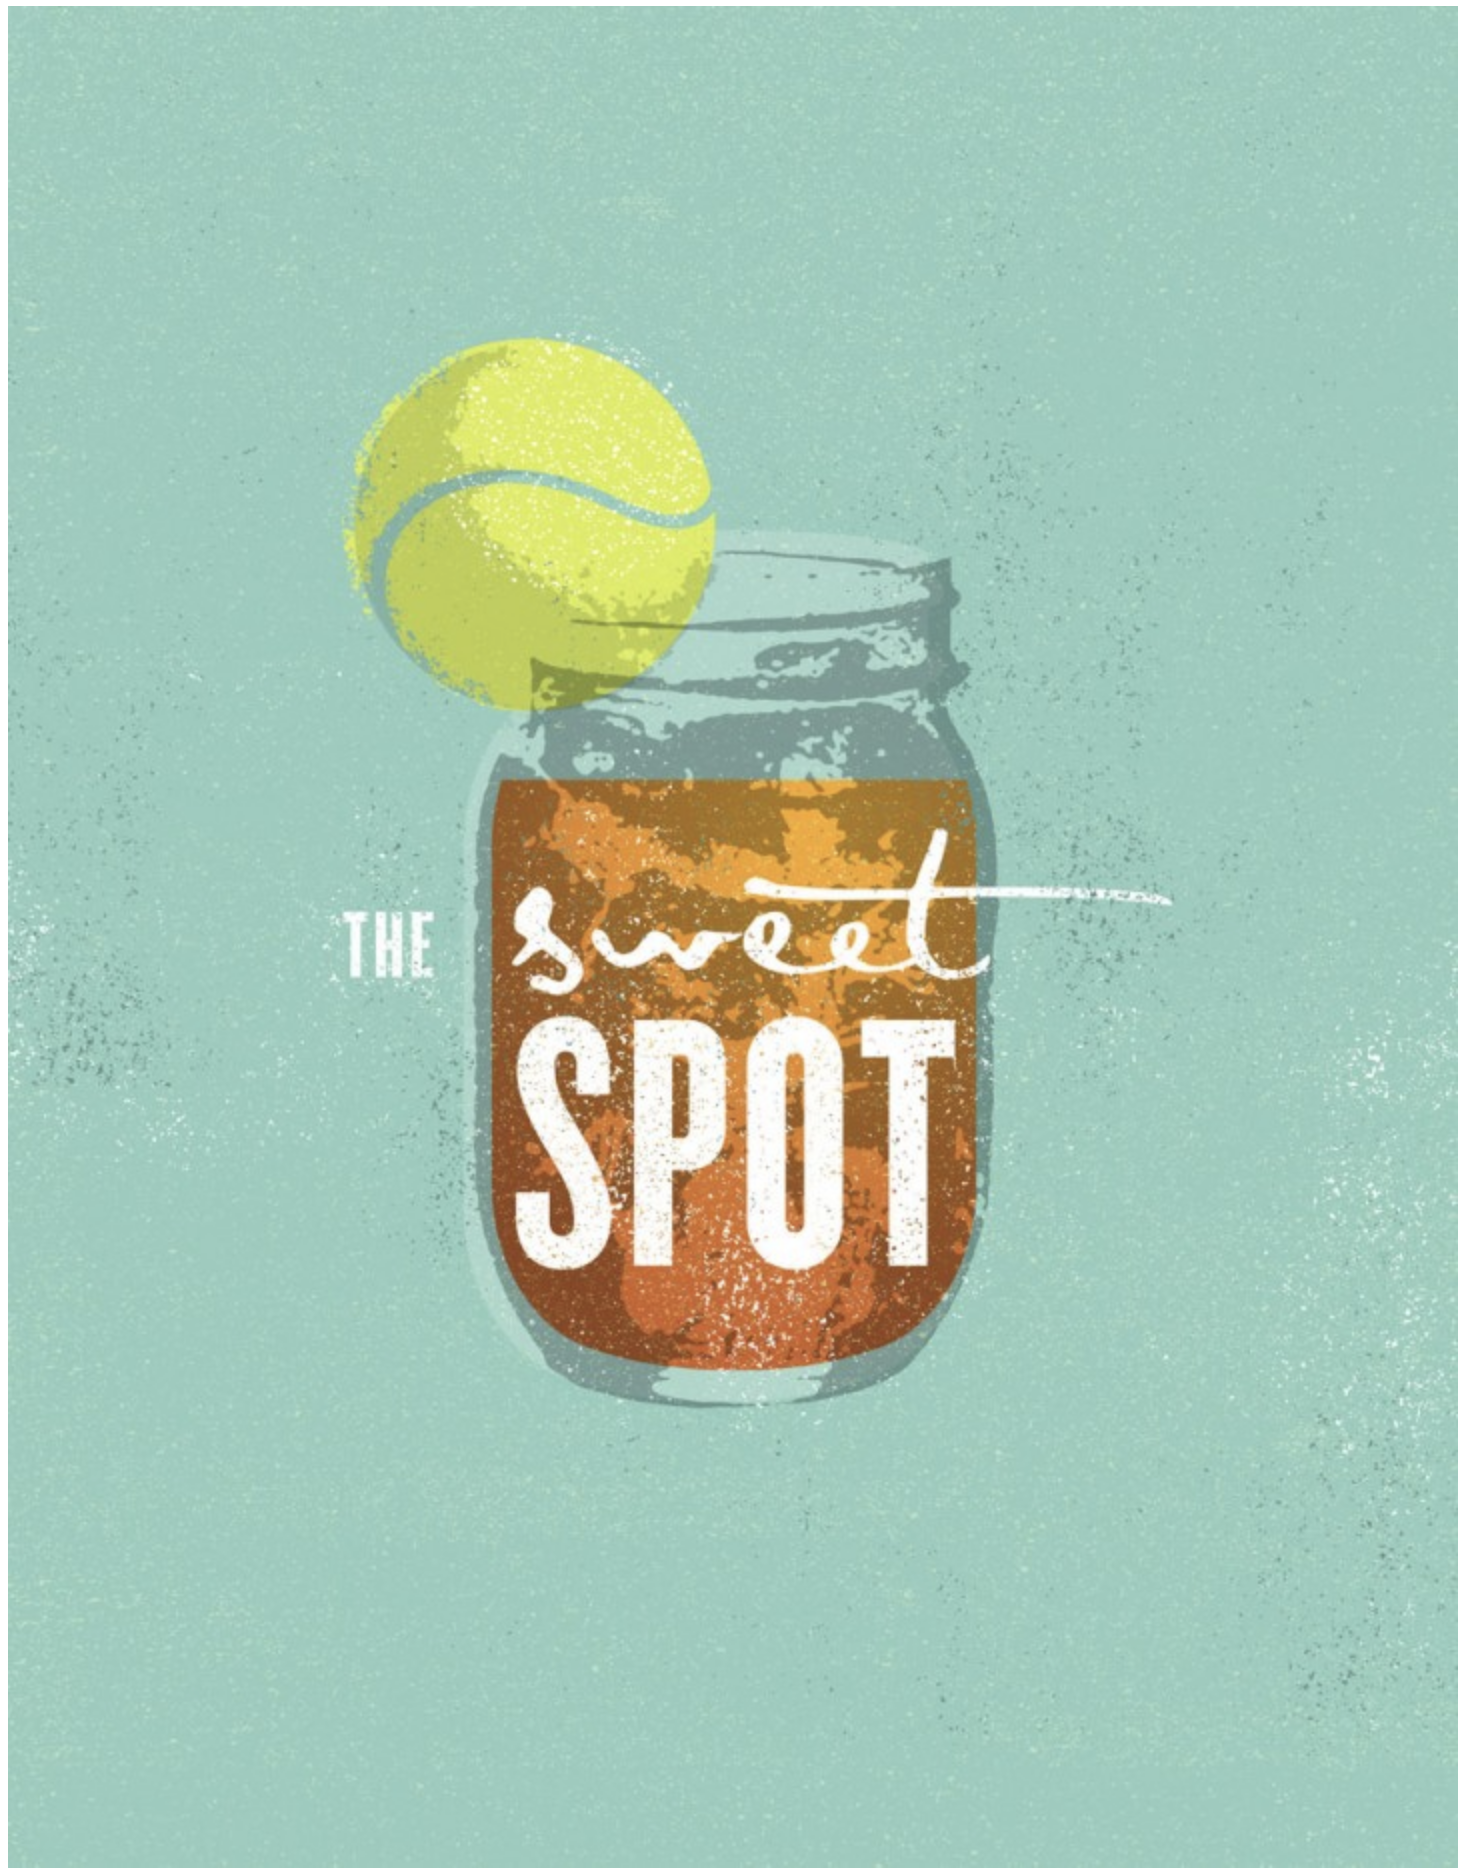 Pin By Lindsey Windfeldt On Design Miscellaneous Tennis Art Graphic Design Typography Tennis